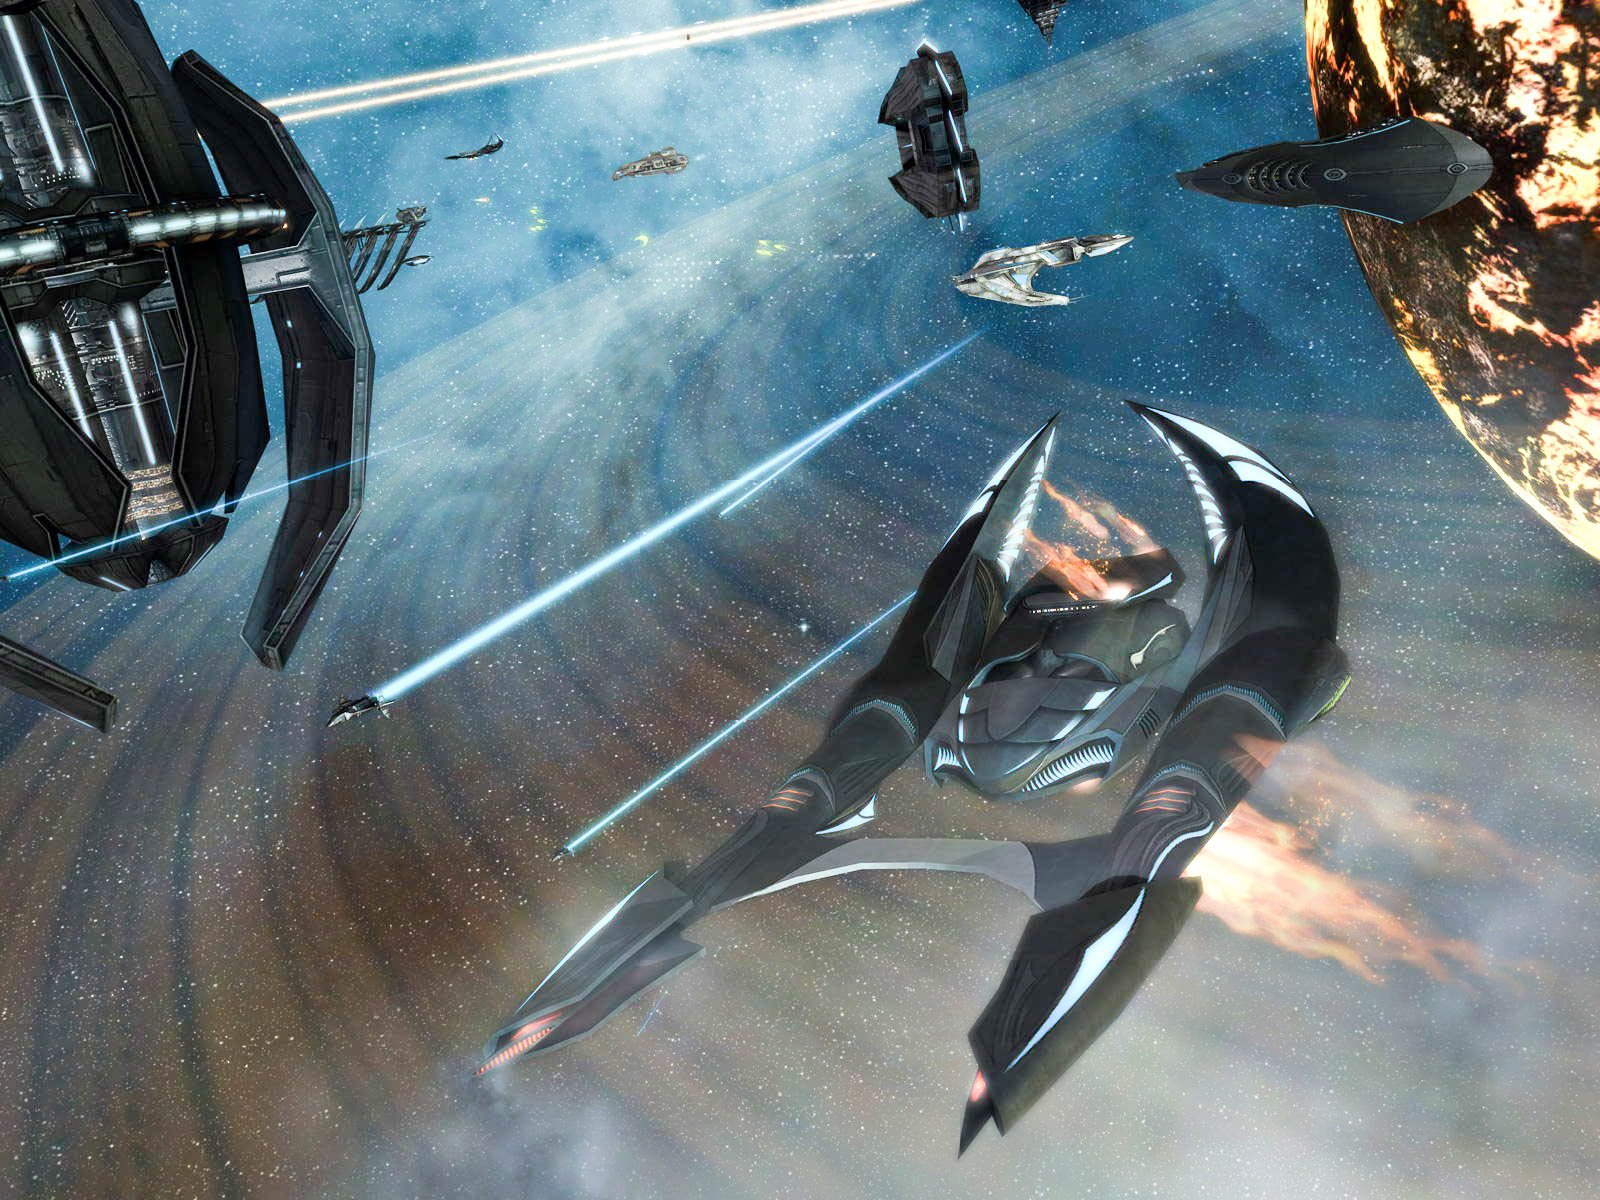 Spaceship Amazing HD Pictures, Imges And HD Wallpapers ...